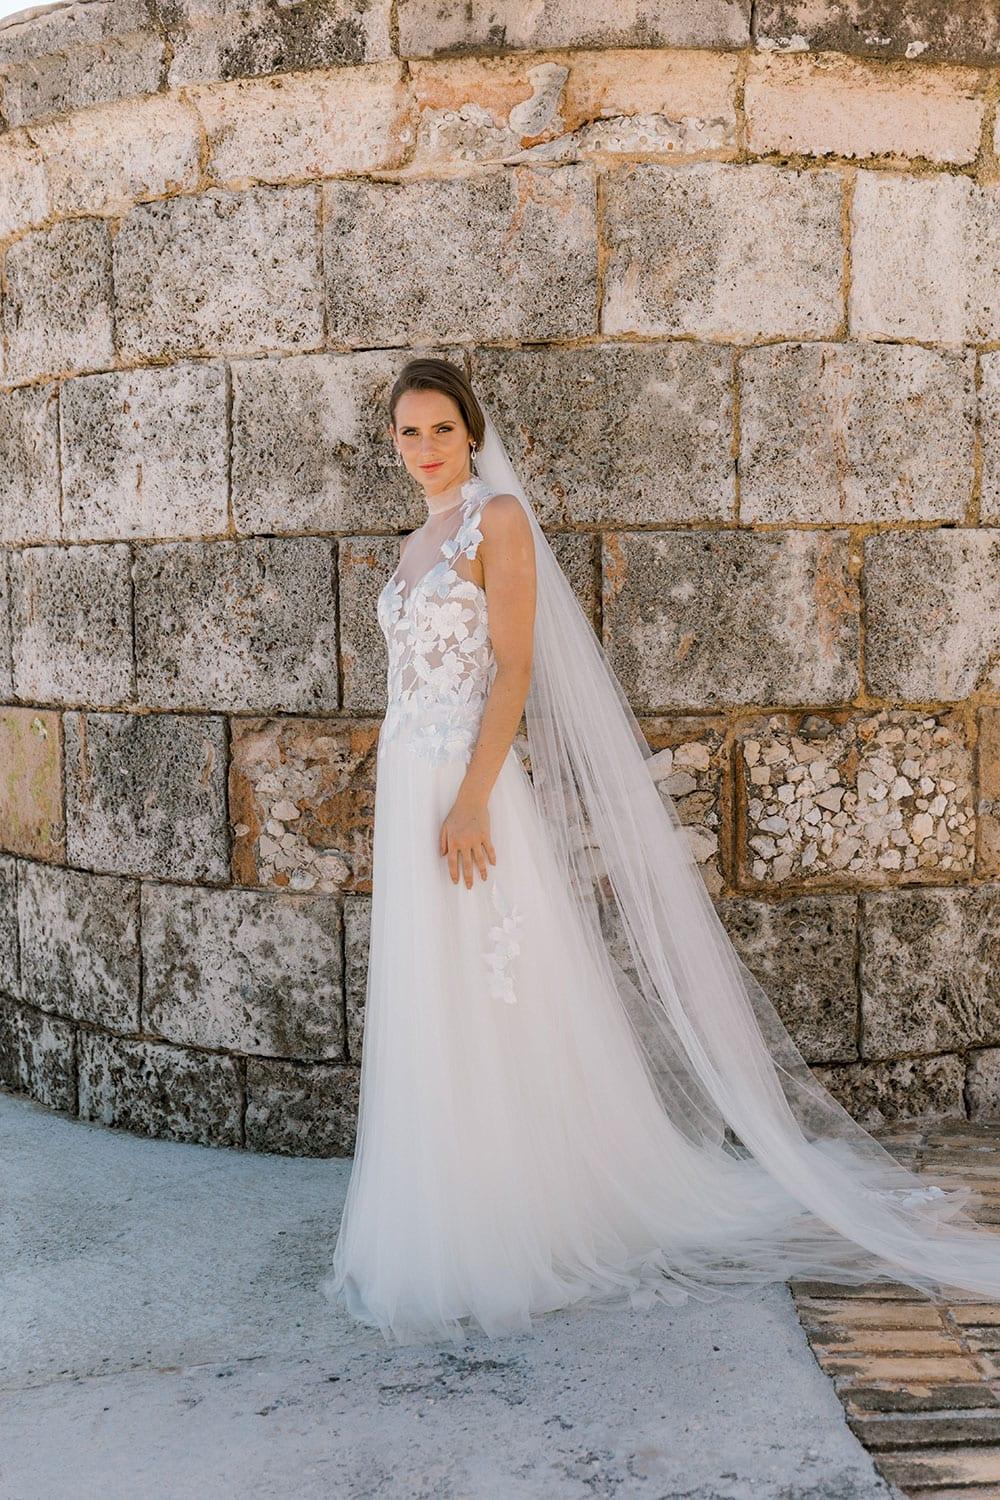 Model wearing Vinka Design Julia Wedding Dress, a High Neck Tulle Wedding Gown against a wall in Havana